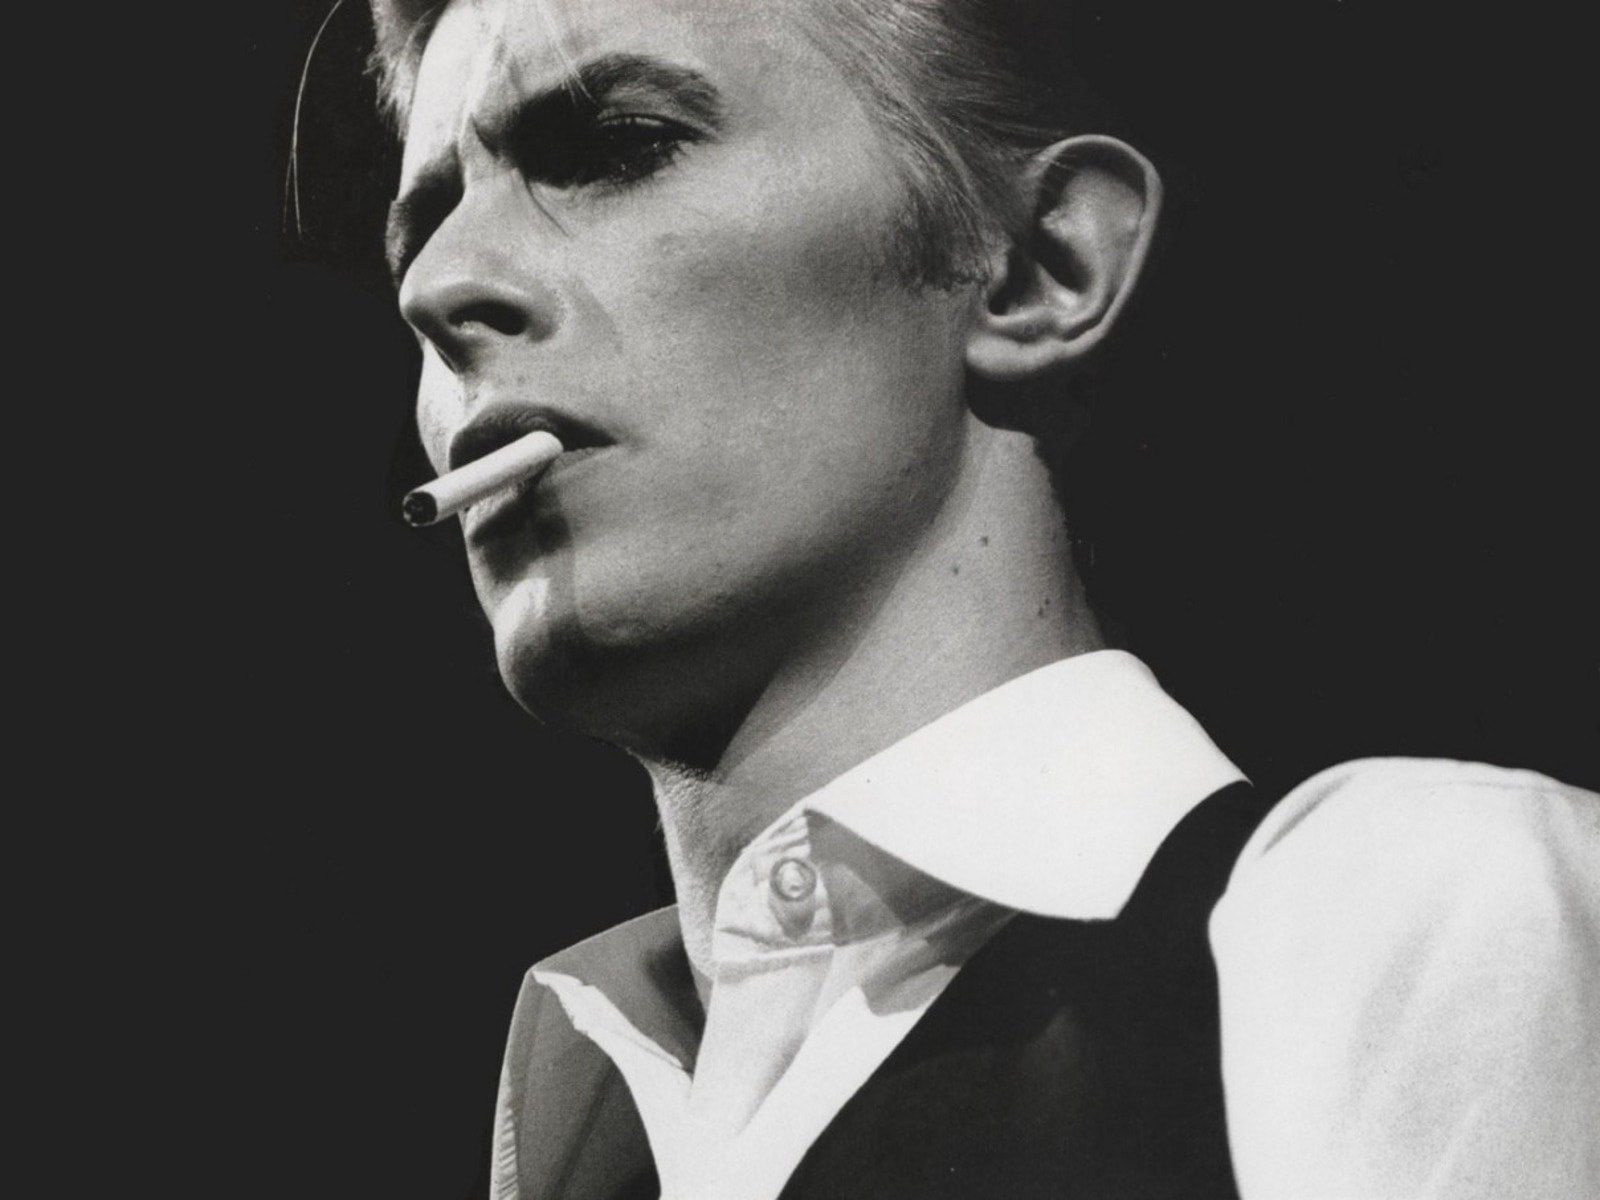 David Bowie Background